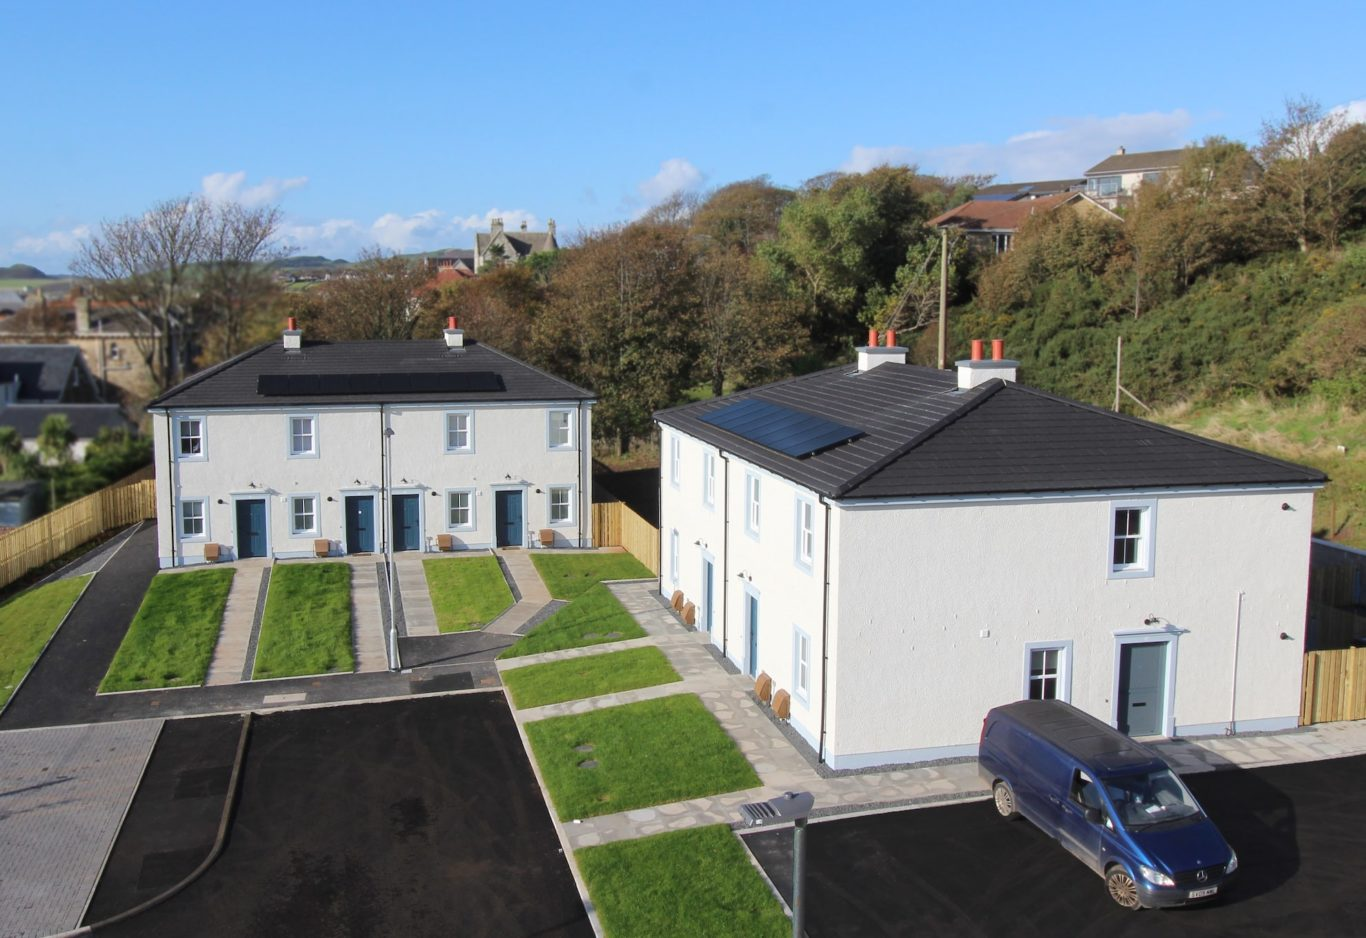 Modular Home & Kit House Builders Affordable Housing Partnerships The Wee House Company